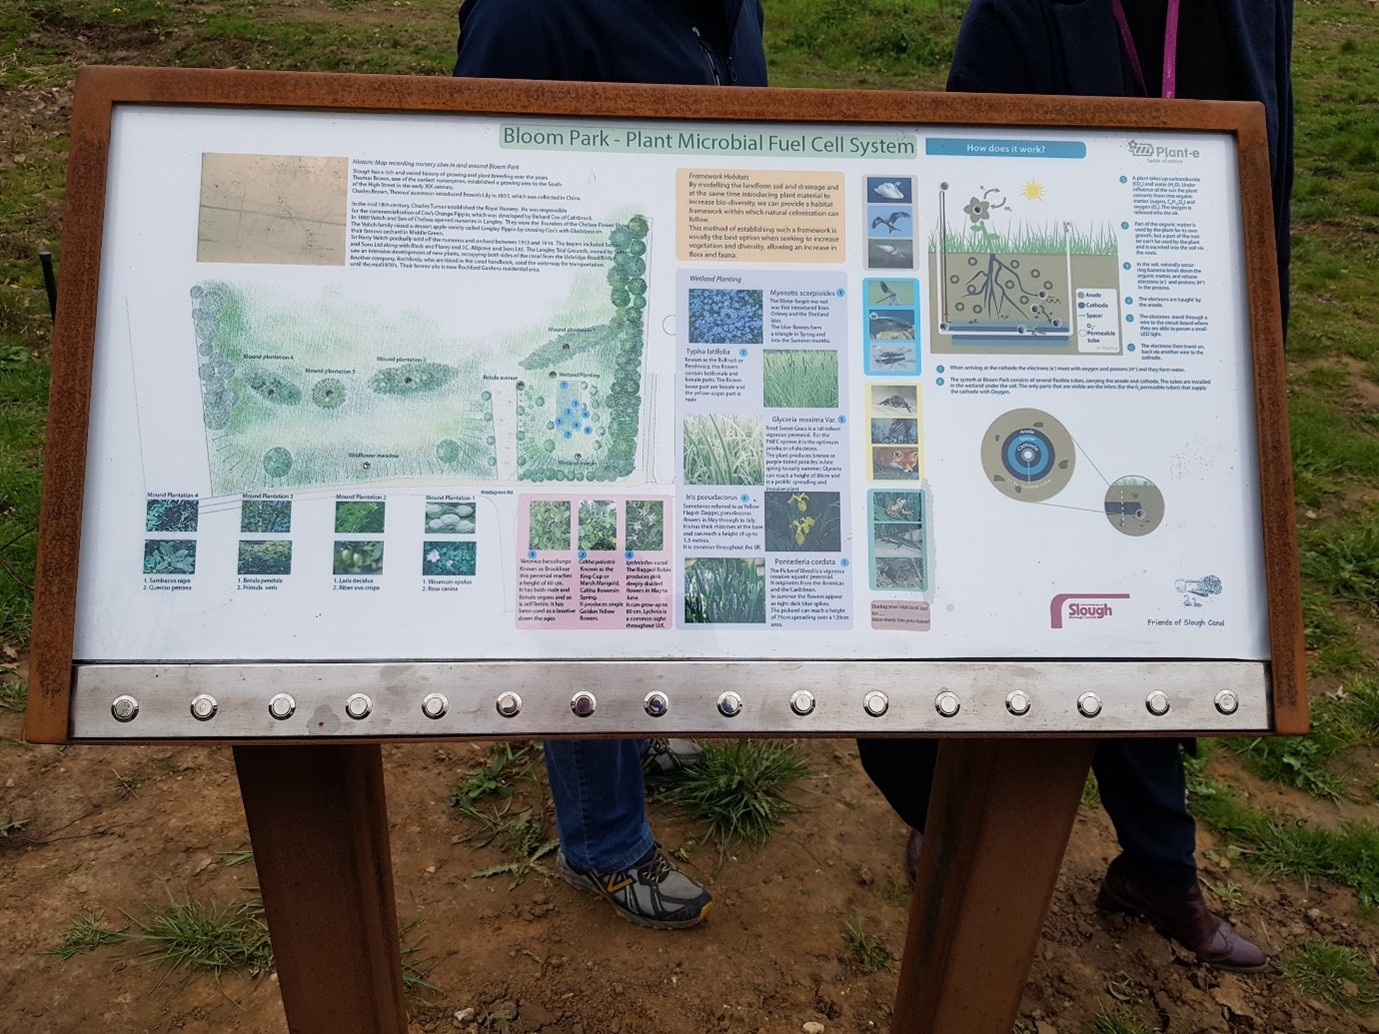 Bloompark & Urban Forest – Slough, UK - August 2020